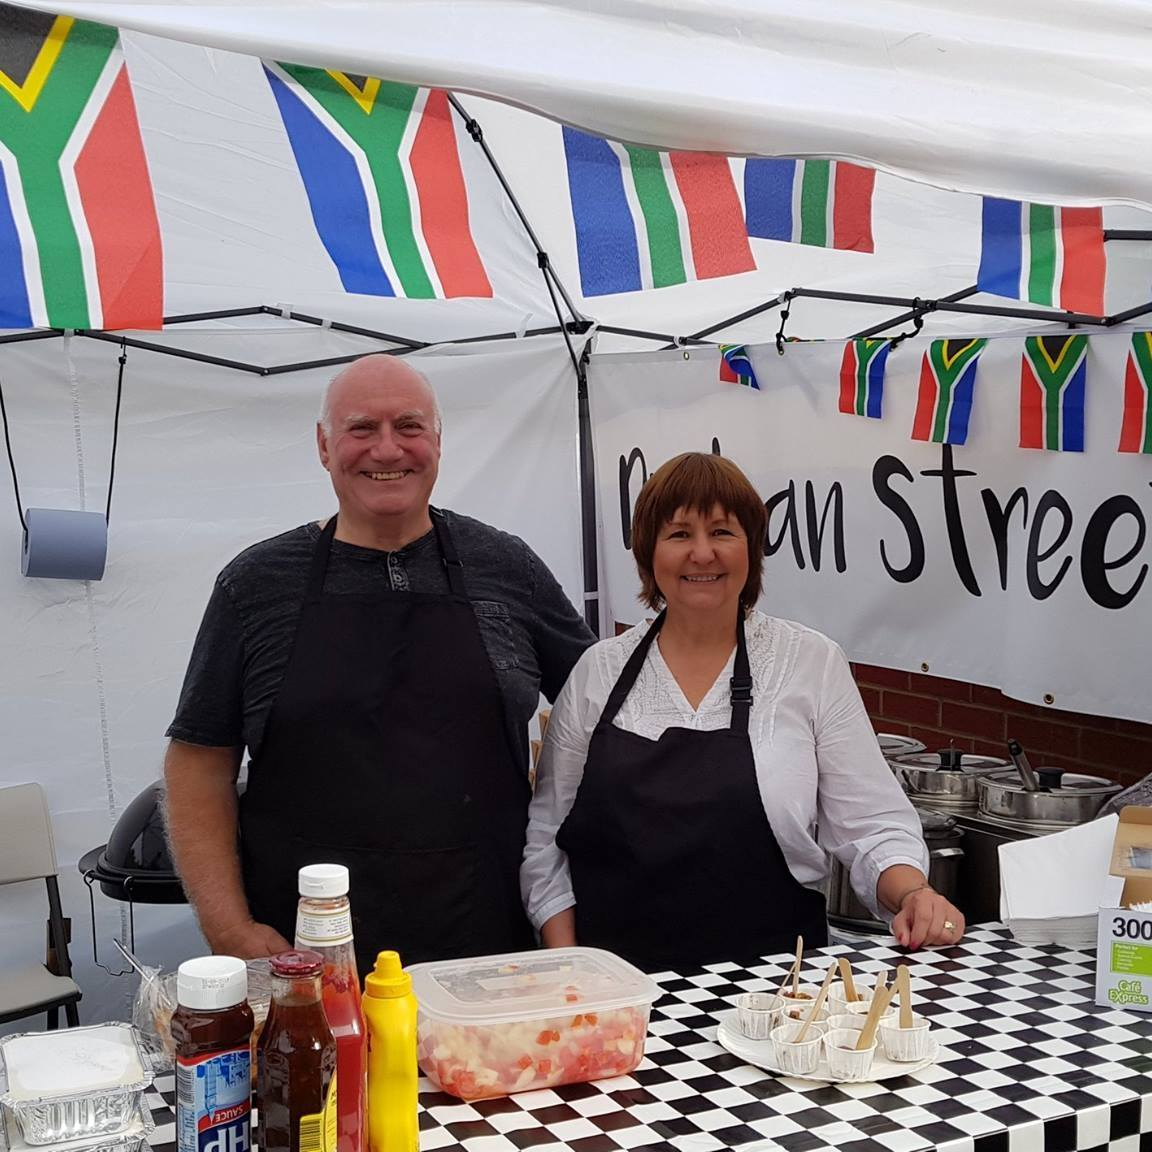 Durban Street Food owners Dave and Charmaine Mace